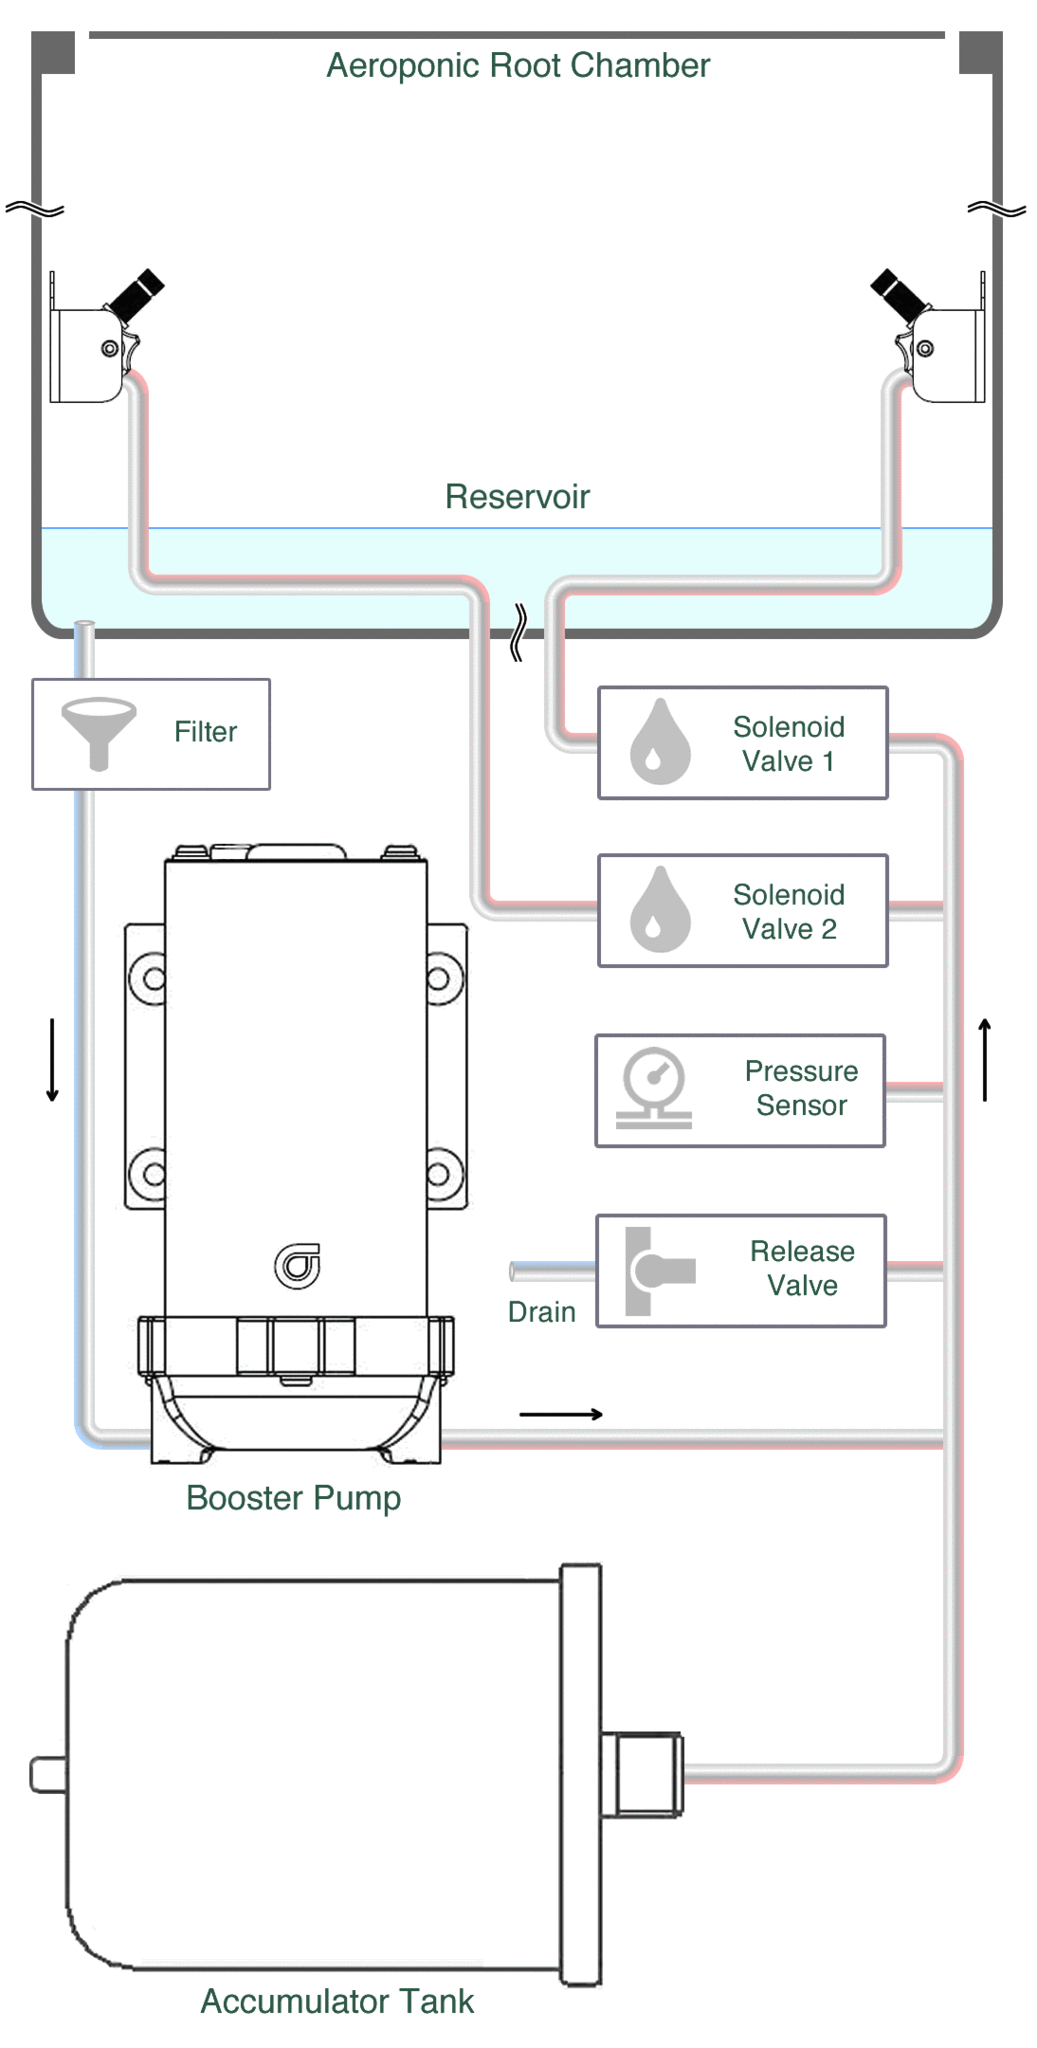 Aeroponics Pressure Regulating Unit Bifarm Booster Pump Wiring Diagram So In The Above Nutrient Is Sucked To A And Pressurized Accumulator Tank Stores Maintain